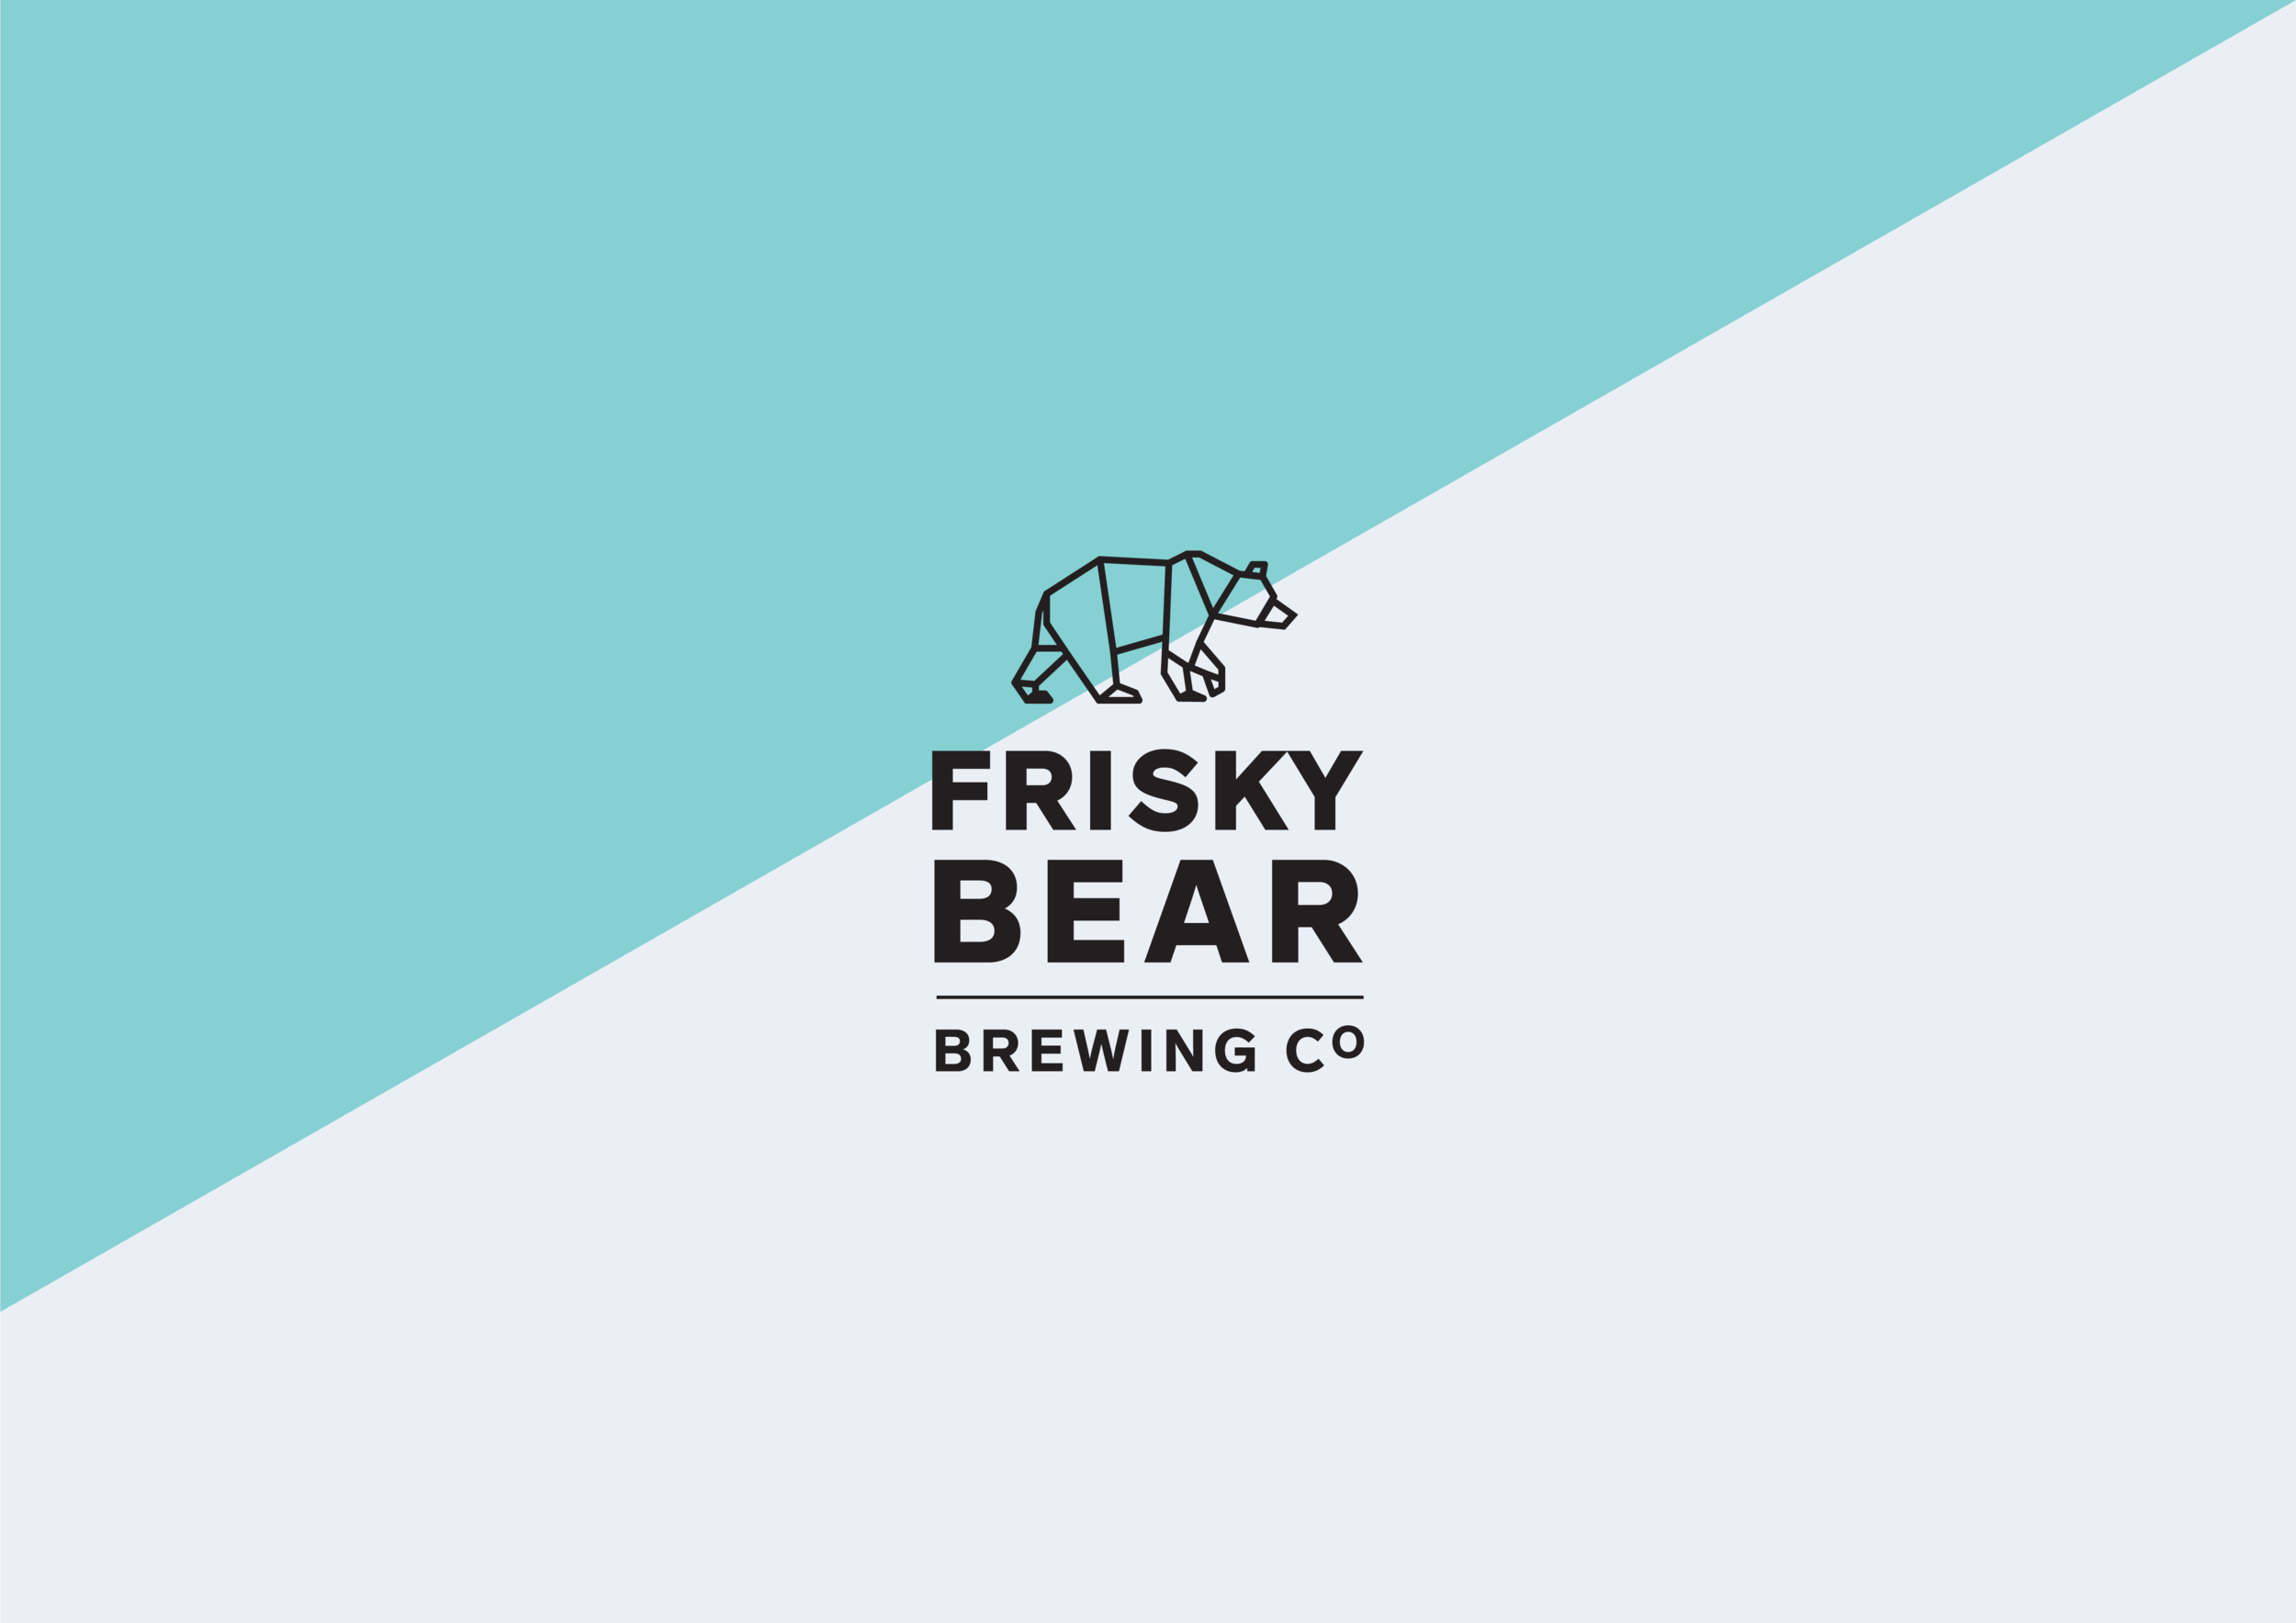 Frisky Bear craft beer branding 4.png